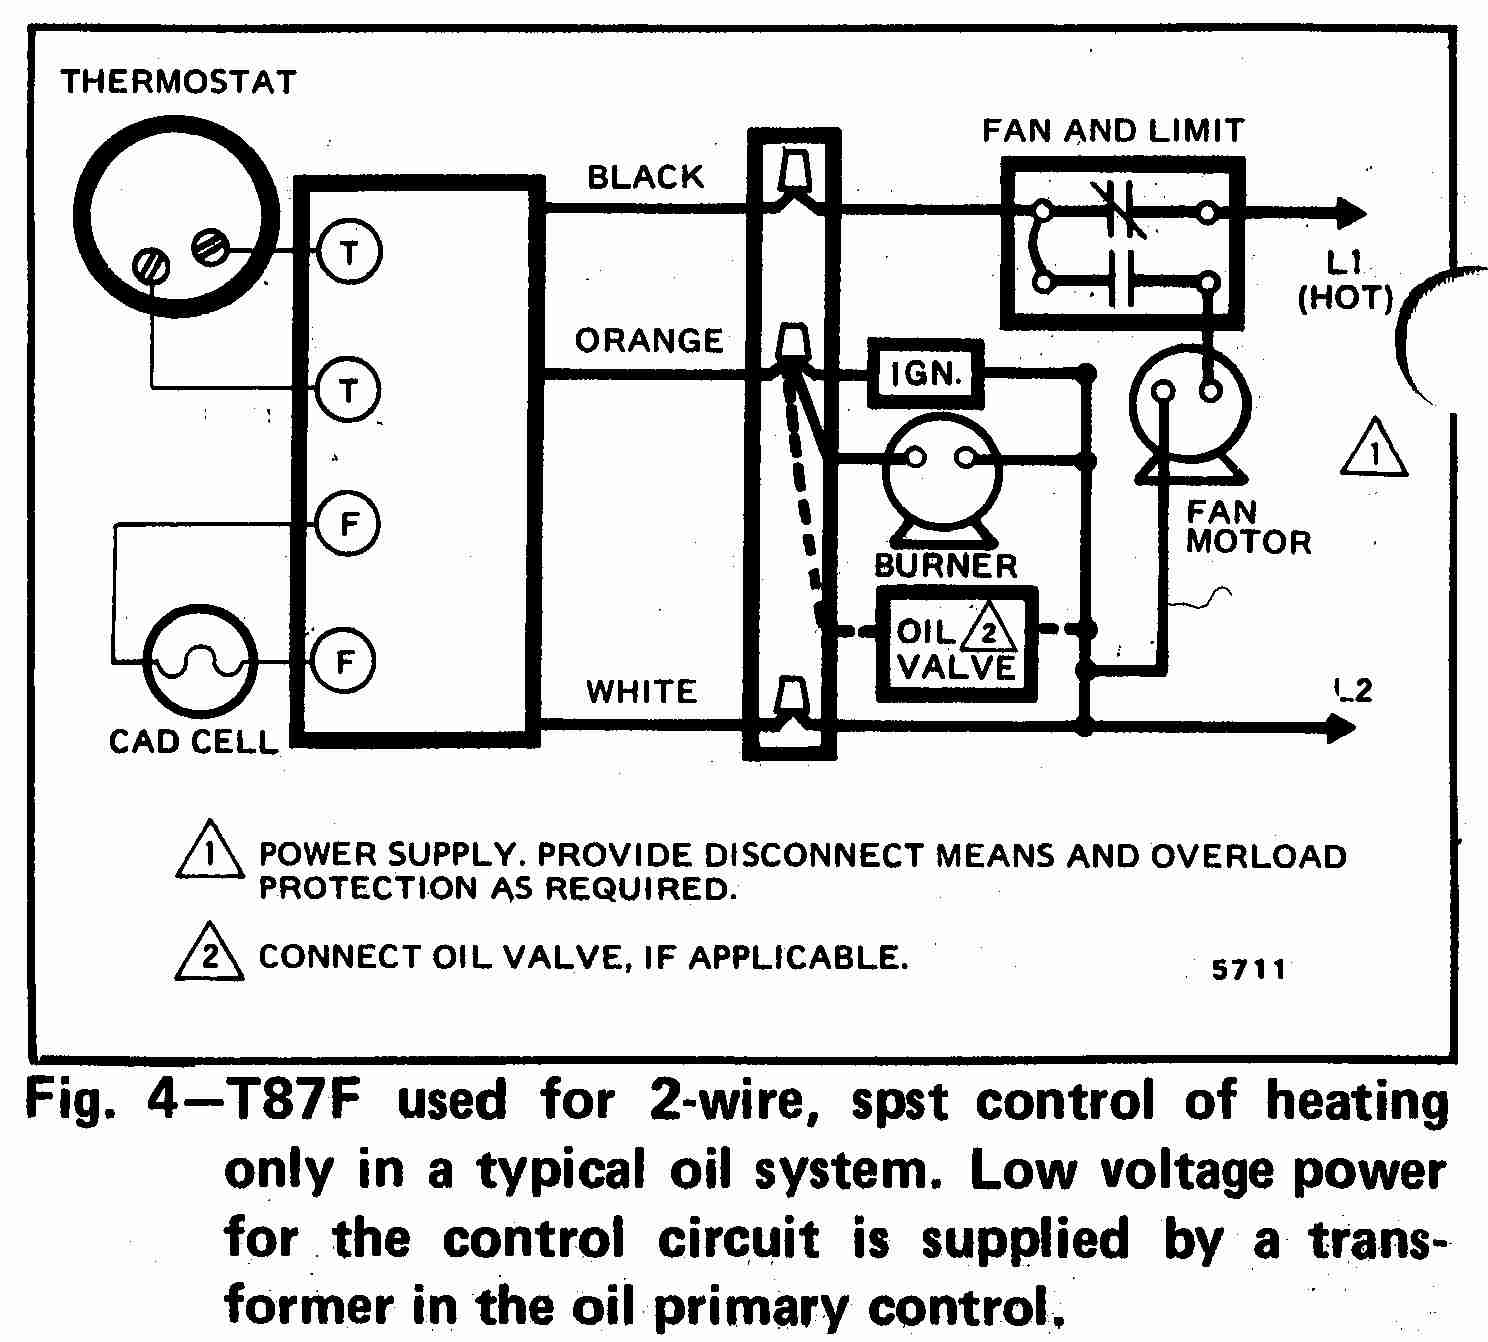 Room thermostat wiring diagrams for HVAC systems on electrical wiring diagram, ac heat pump diagram, cable tv wiring diagram, microwave wiring diagram, ac heat cover, compressor wiring diagram, tempstar air conditioner wiring diagram,